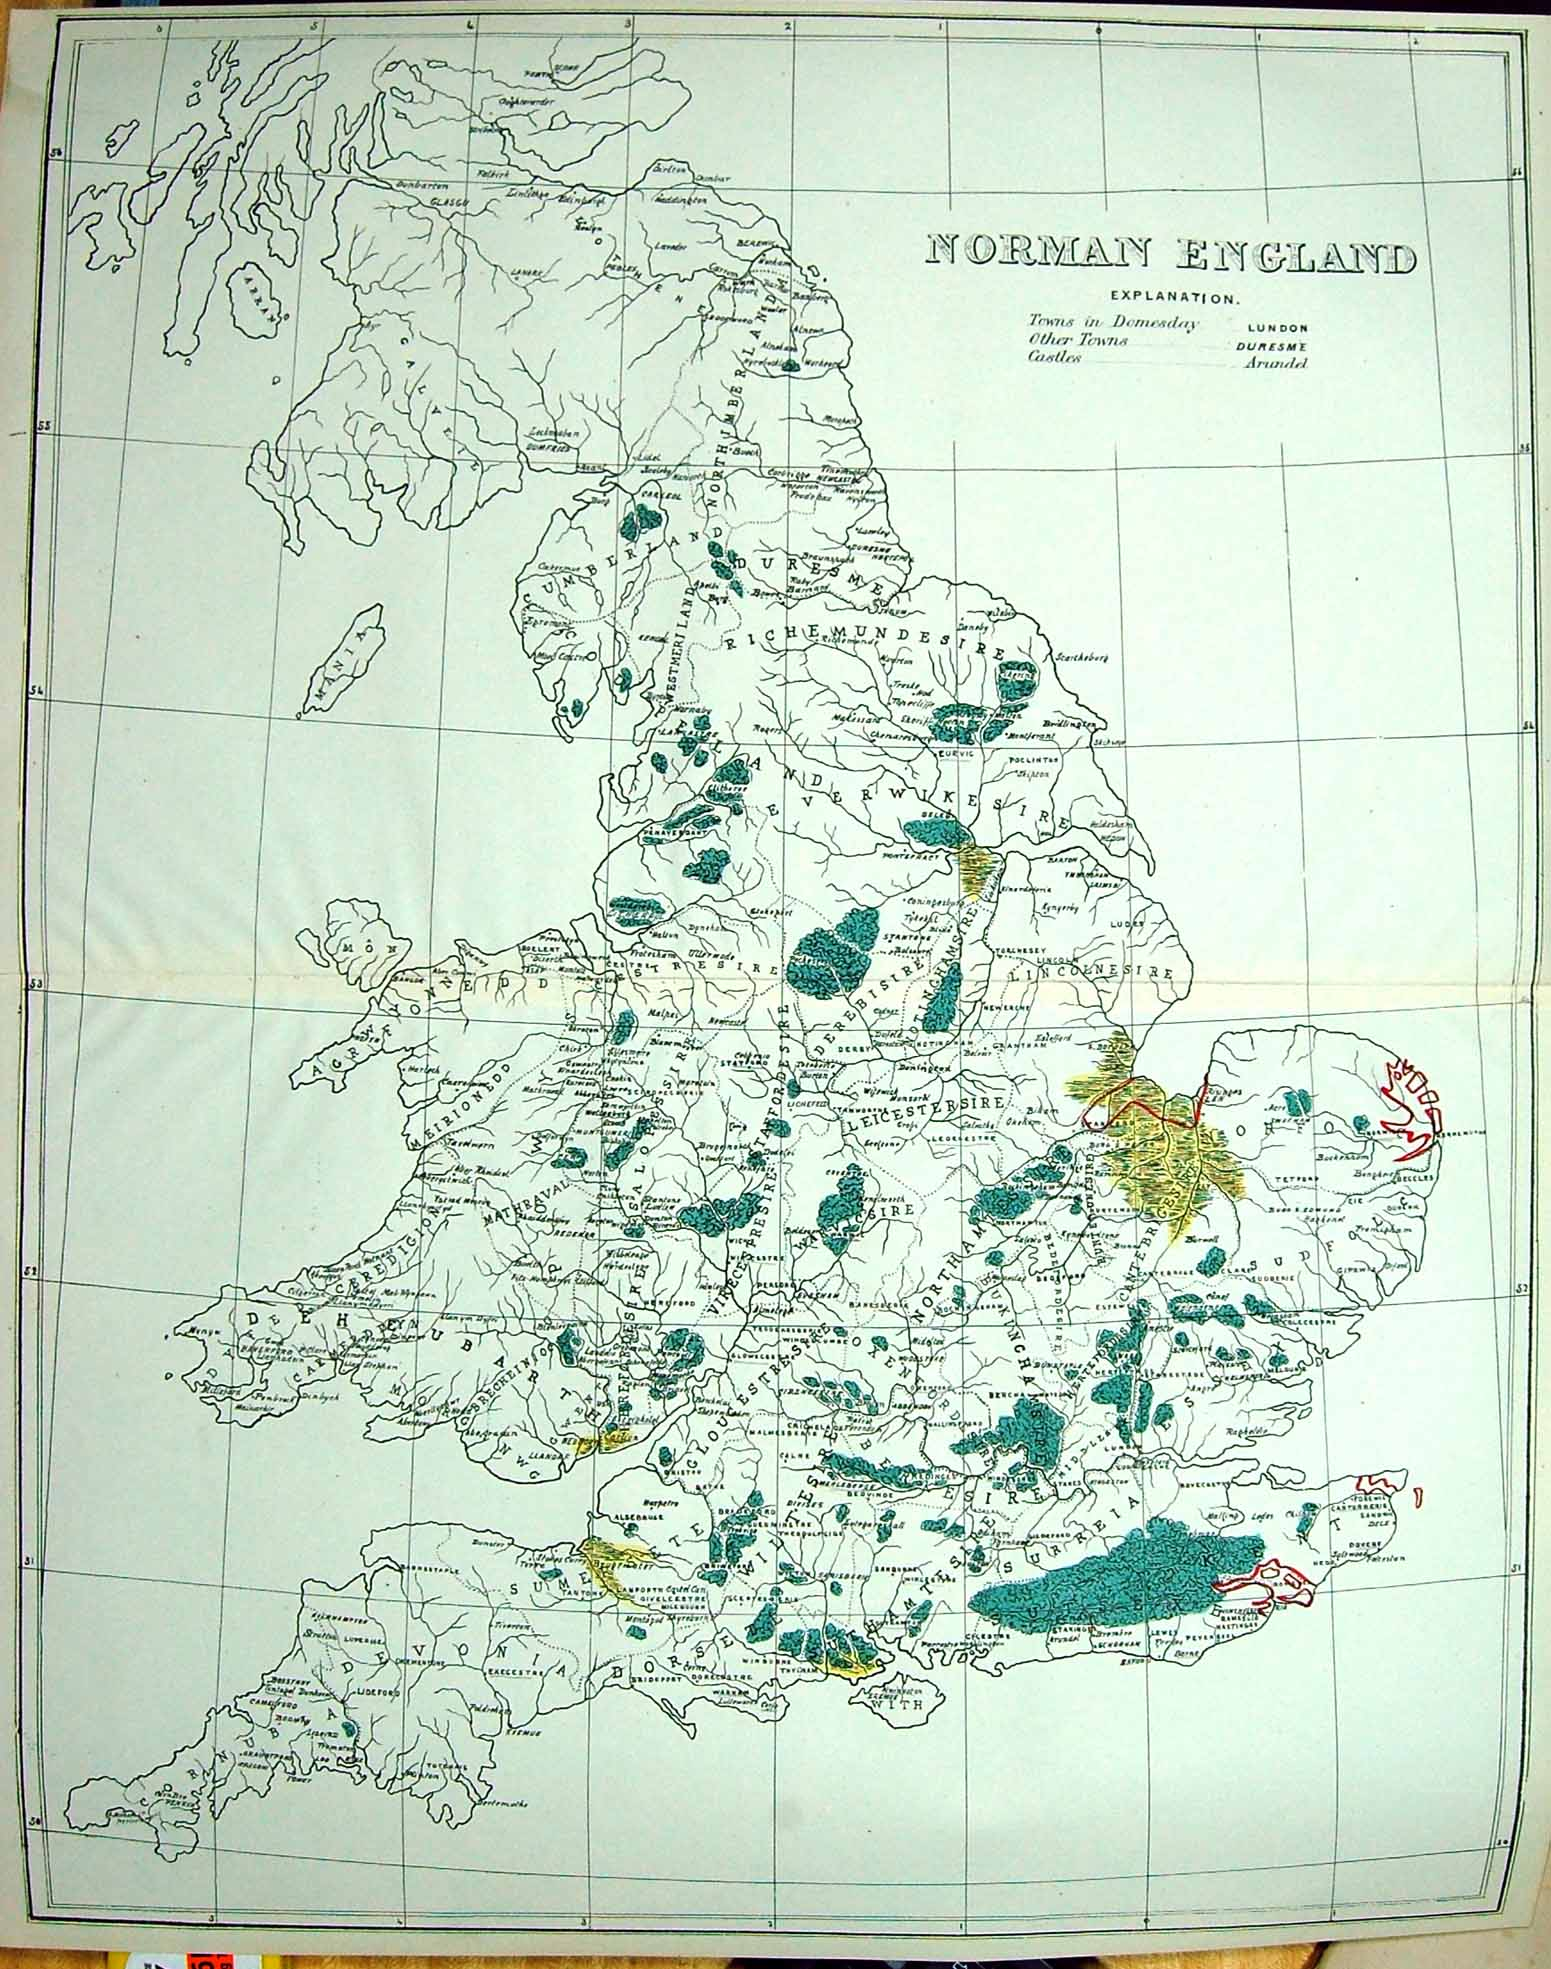 Old print antique and victorian art prints paintings world maps print pearson text map england 1870 norman england surreia lincolnshire 004j154 old original gumiabroncs